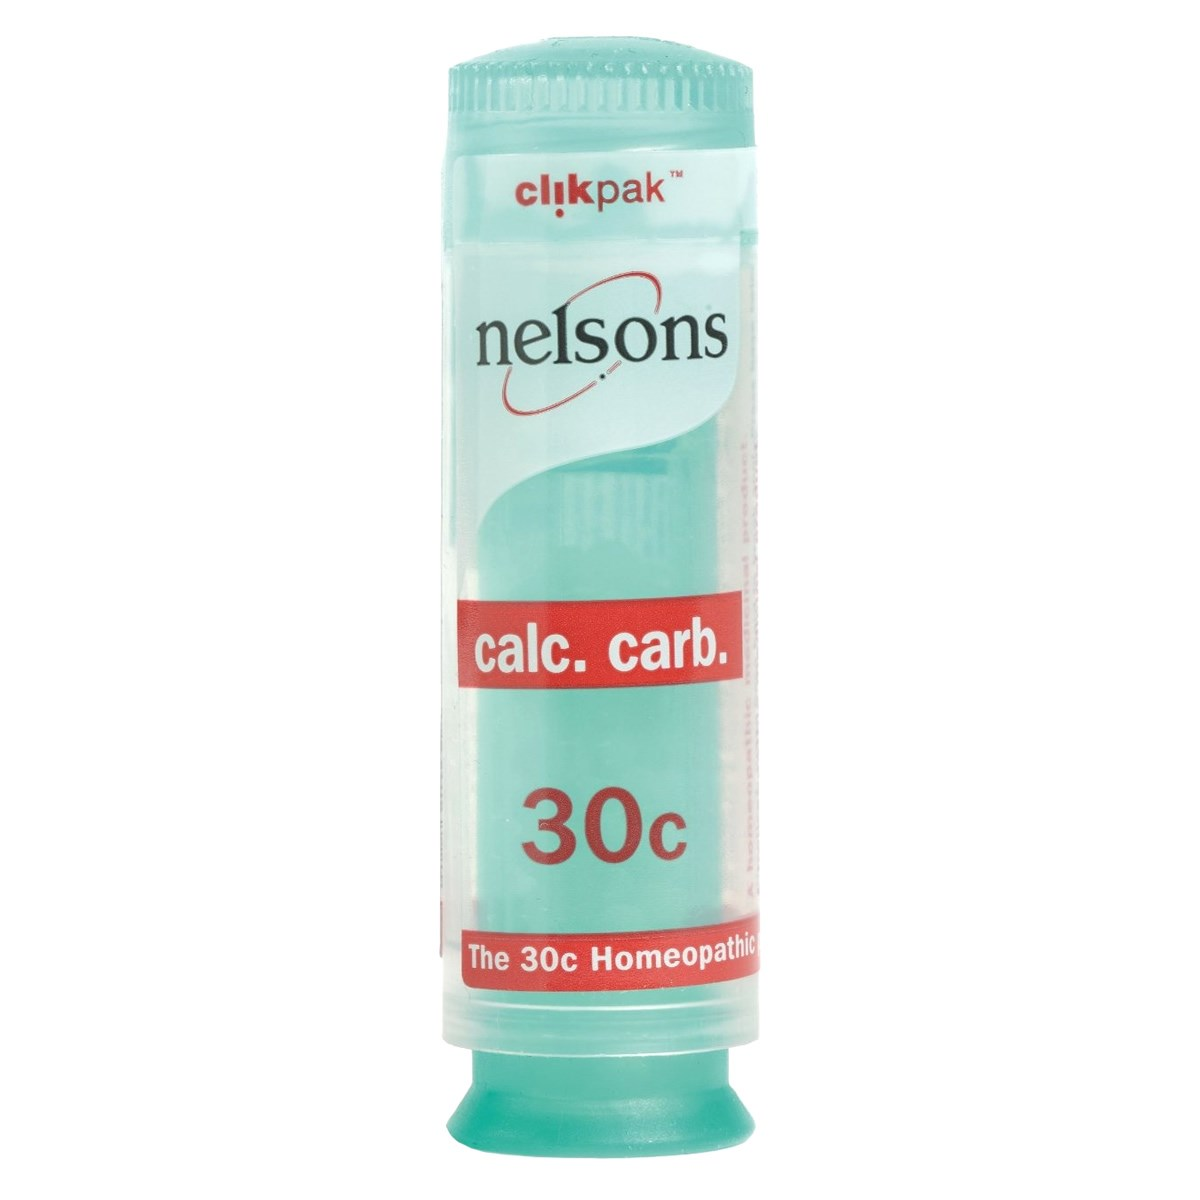 Nelsons Calc Carb Clikpak Tablets